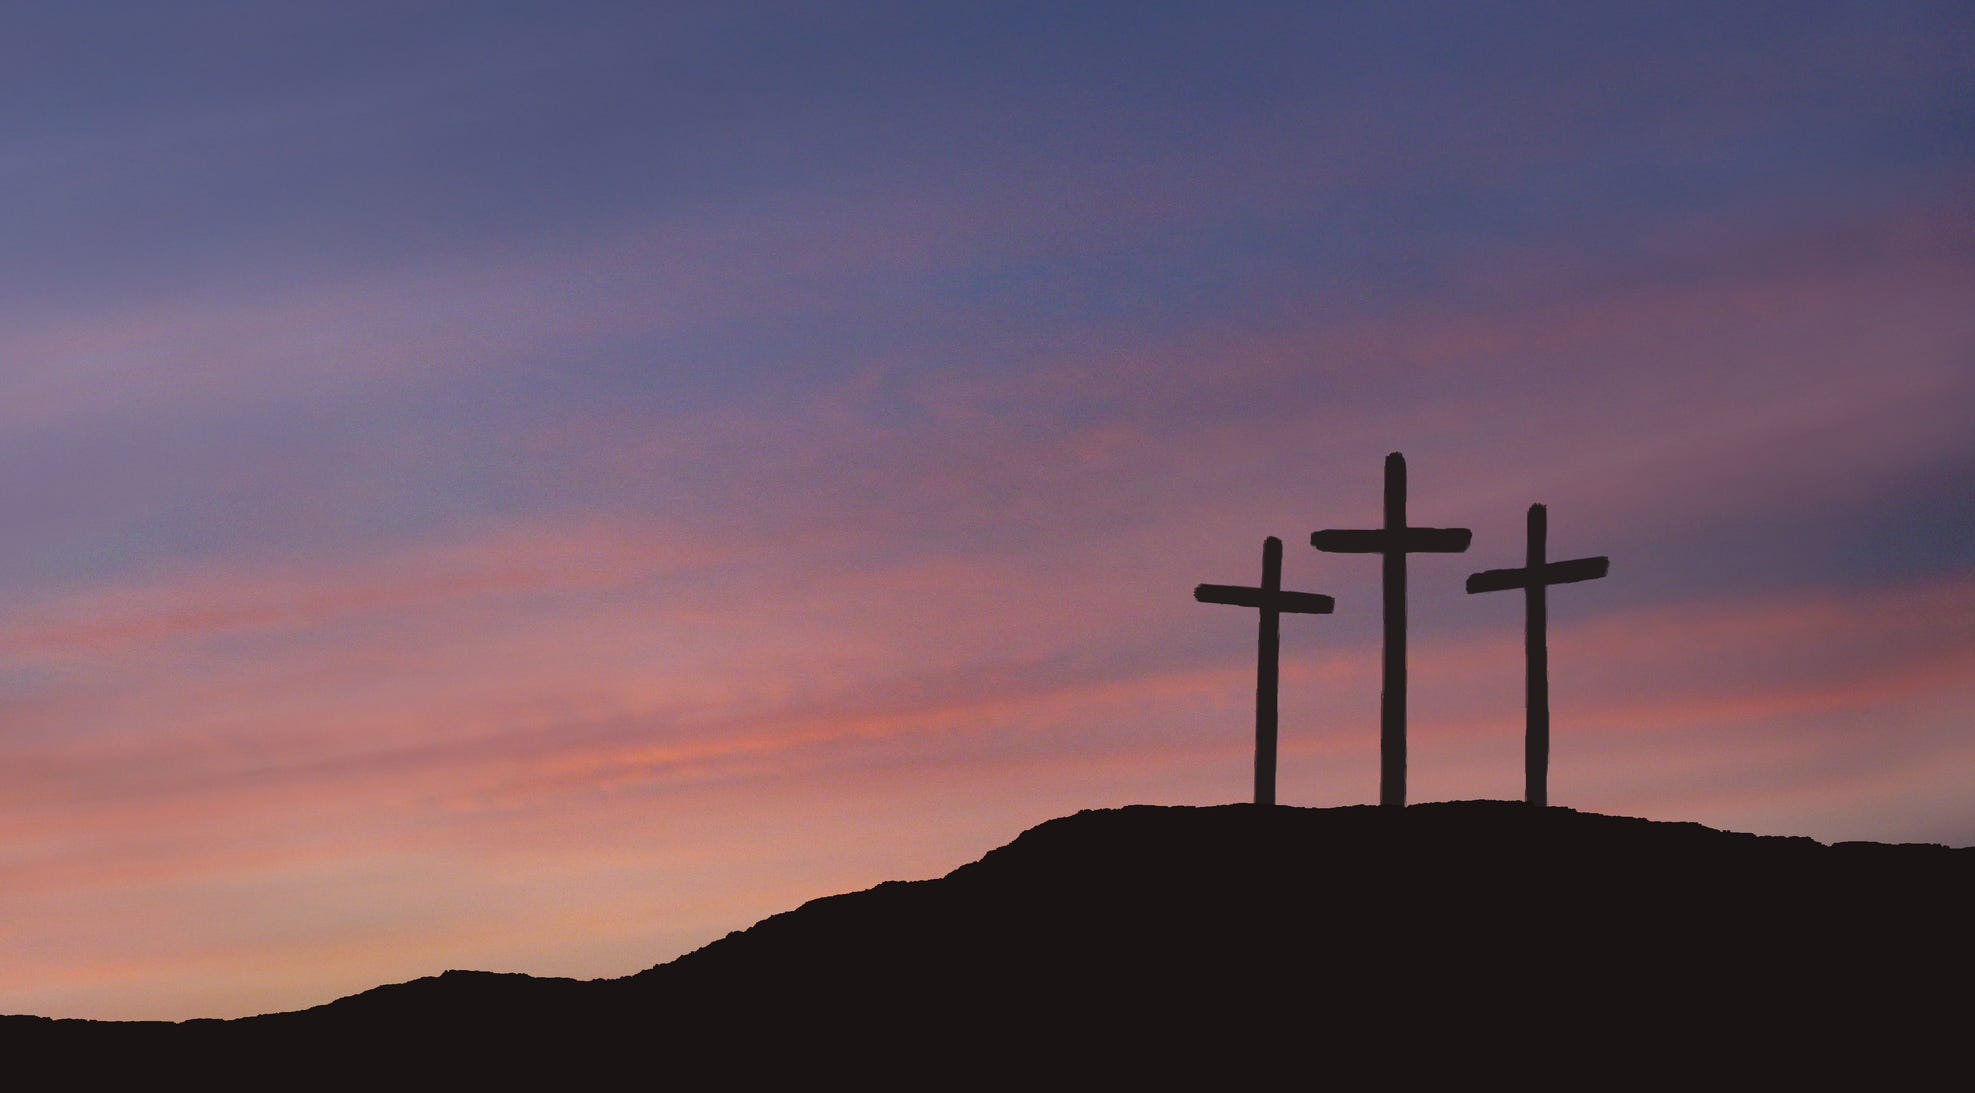 A depiction of the three crosses of Calvary for Good Friday.